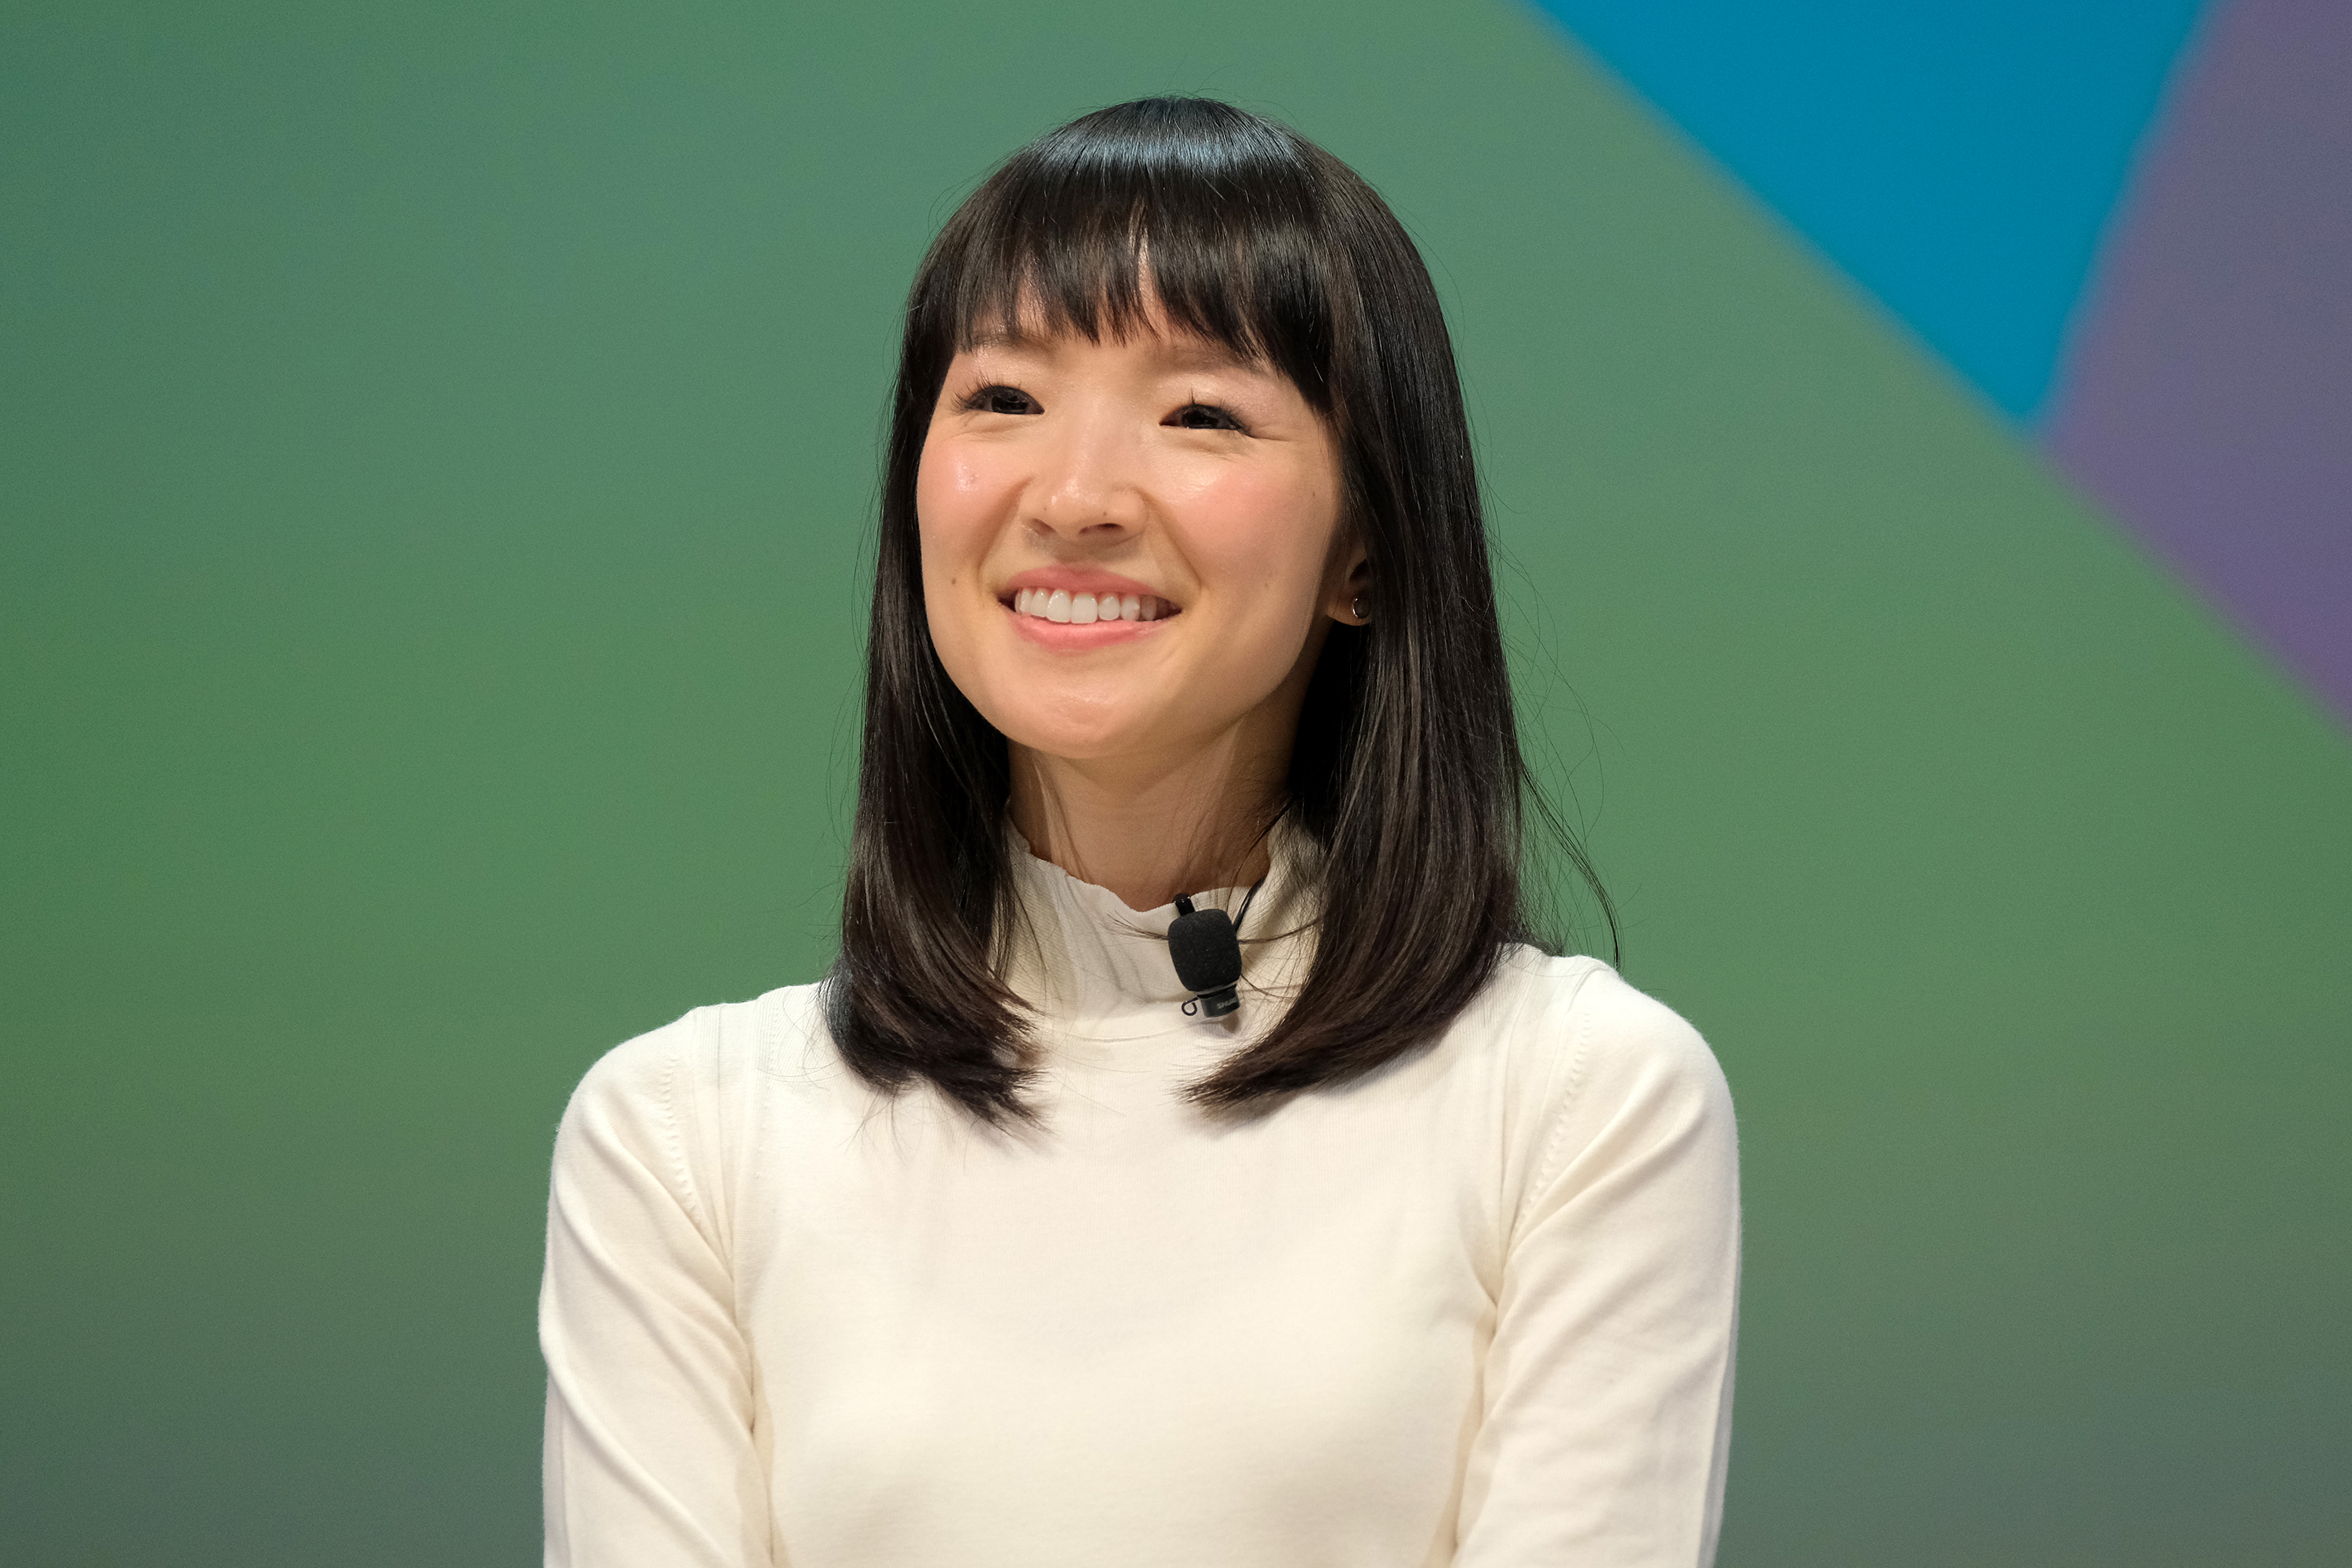 Marie Kondo Admits That Her Own Home Gets Messy Sometimes